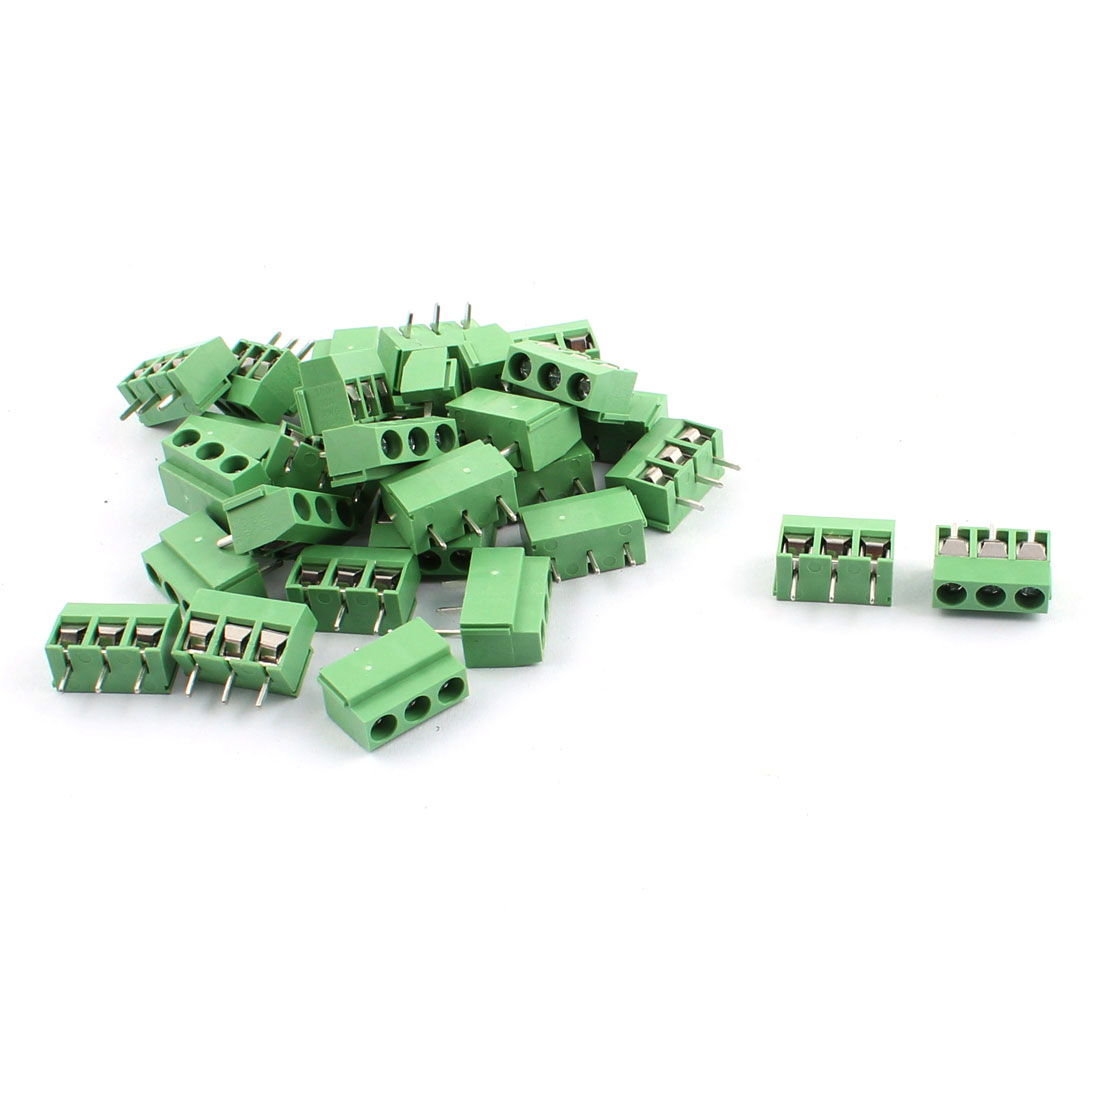 30pcs 300V 10A 3 Position 5.0mm Pitch Pluggable PCB Screw Terminal Block Cable Connector Green for AWG26-14 Wire